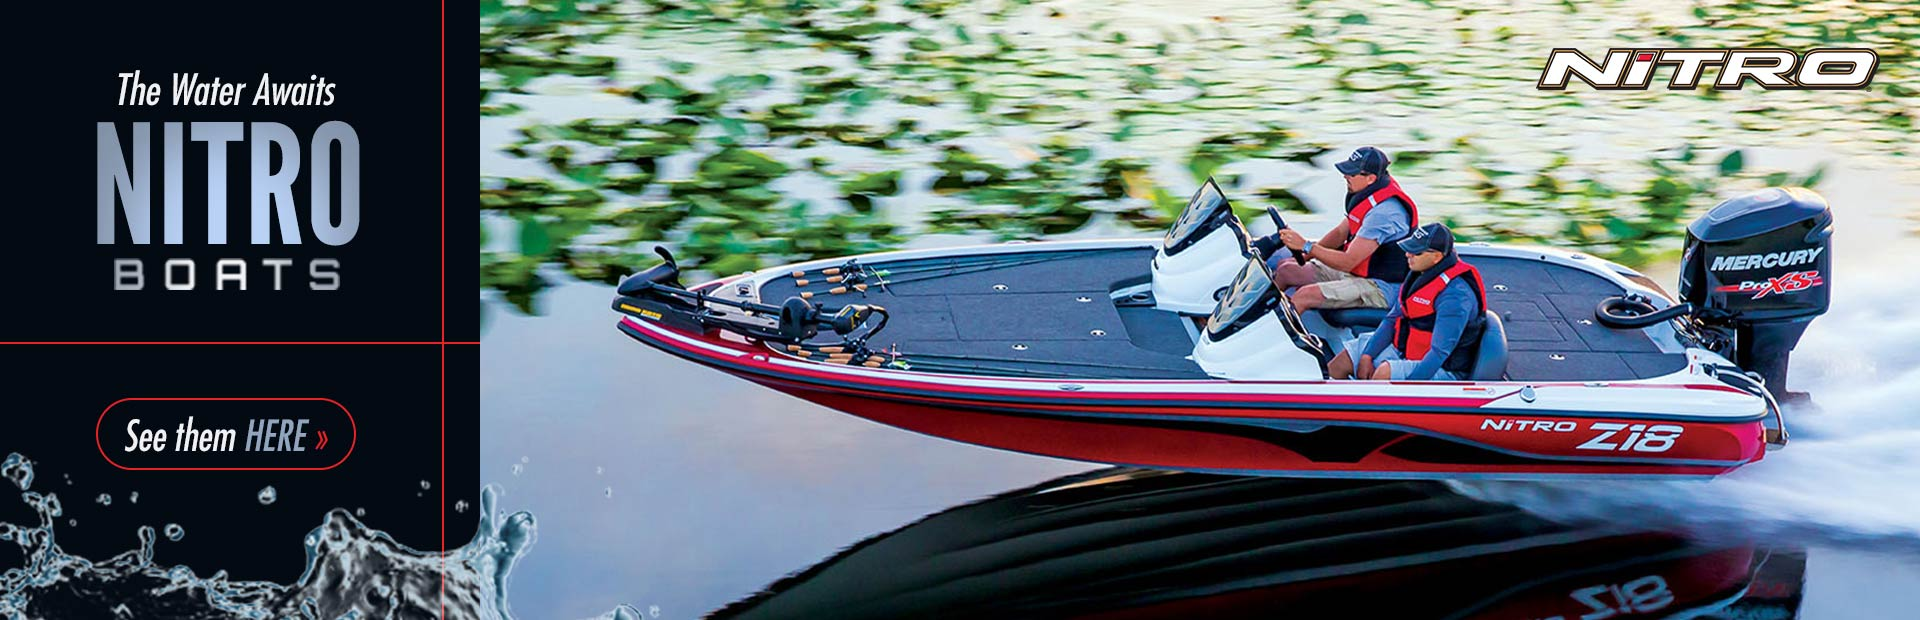 The water awaits with Nitro Boats! Click here to view our selection.